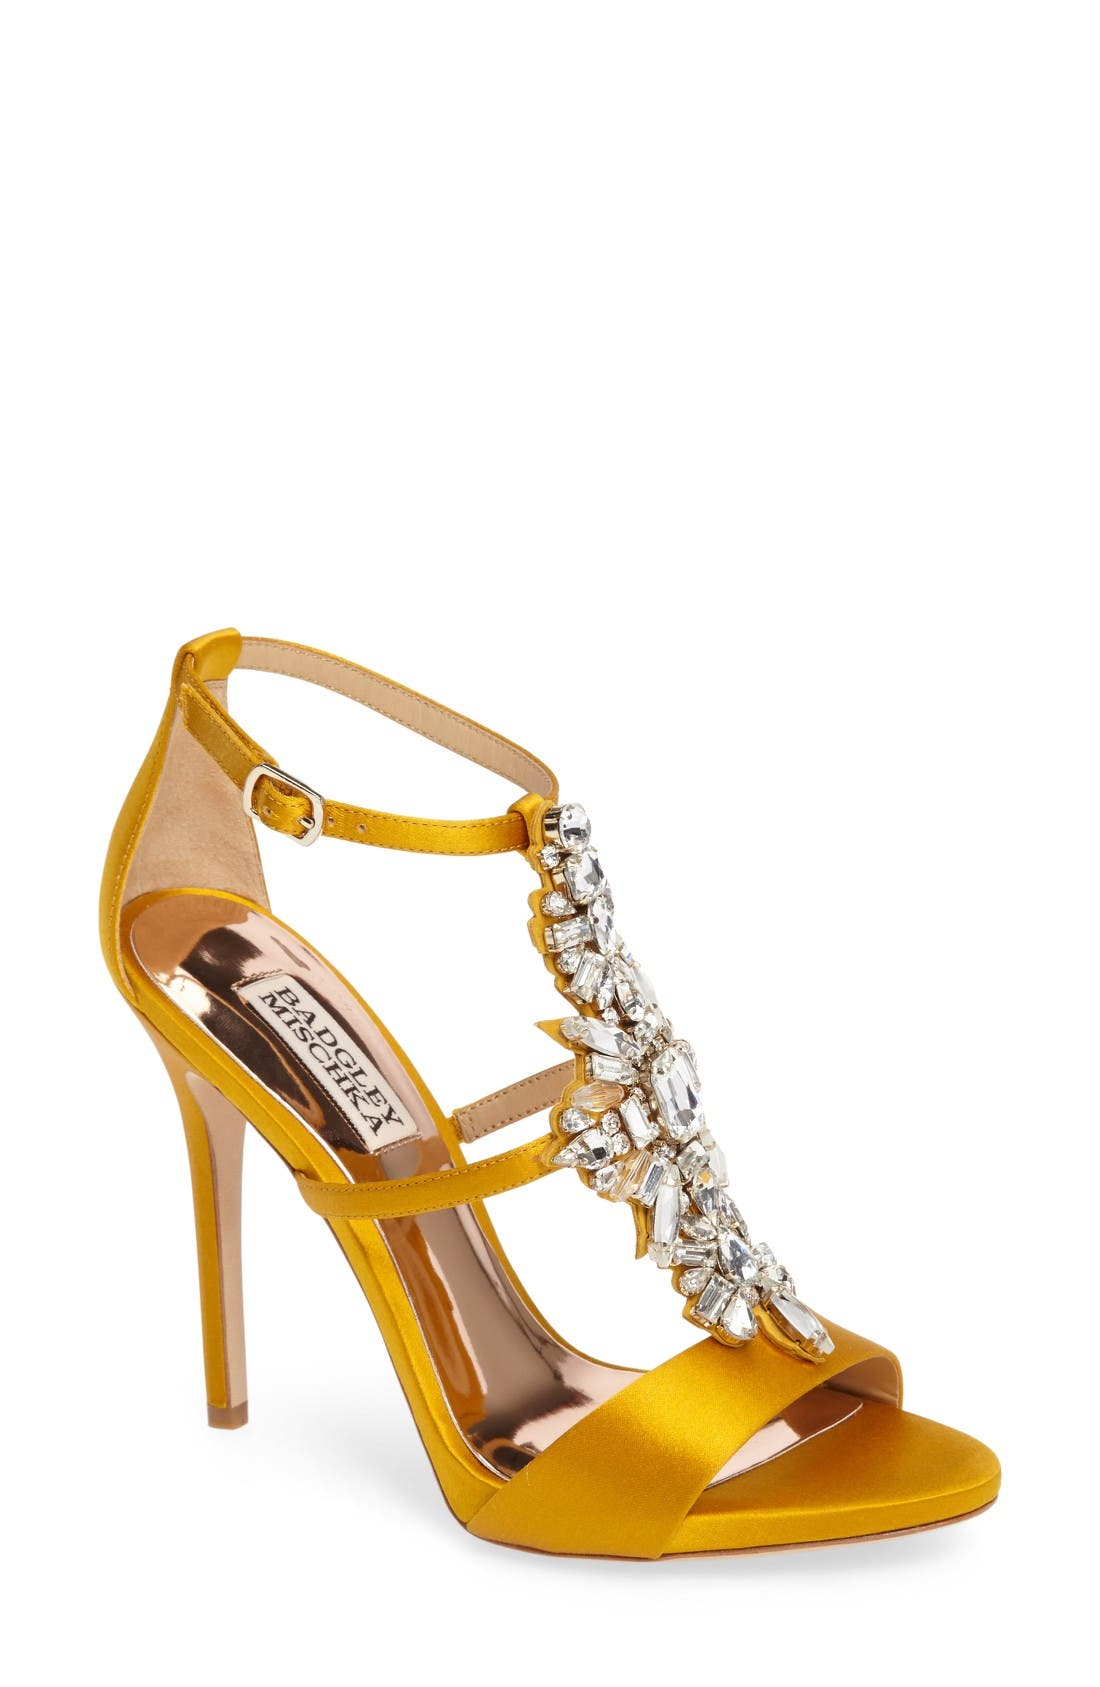 Main Image - Badgley Mischka Basile Crystal Embellished Sandal (Women)